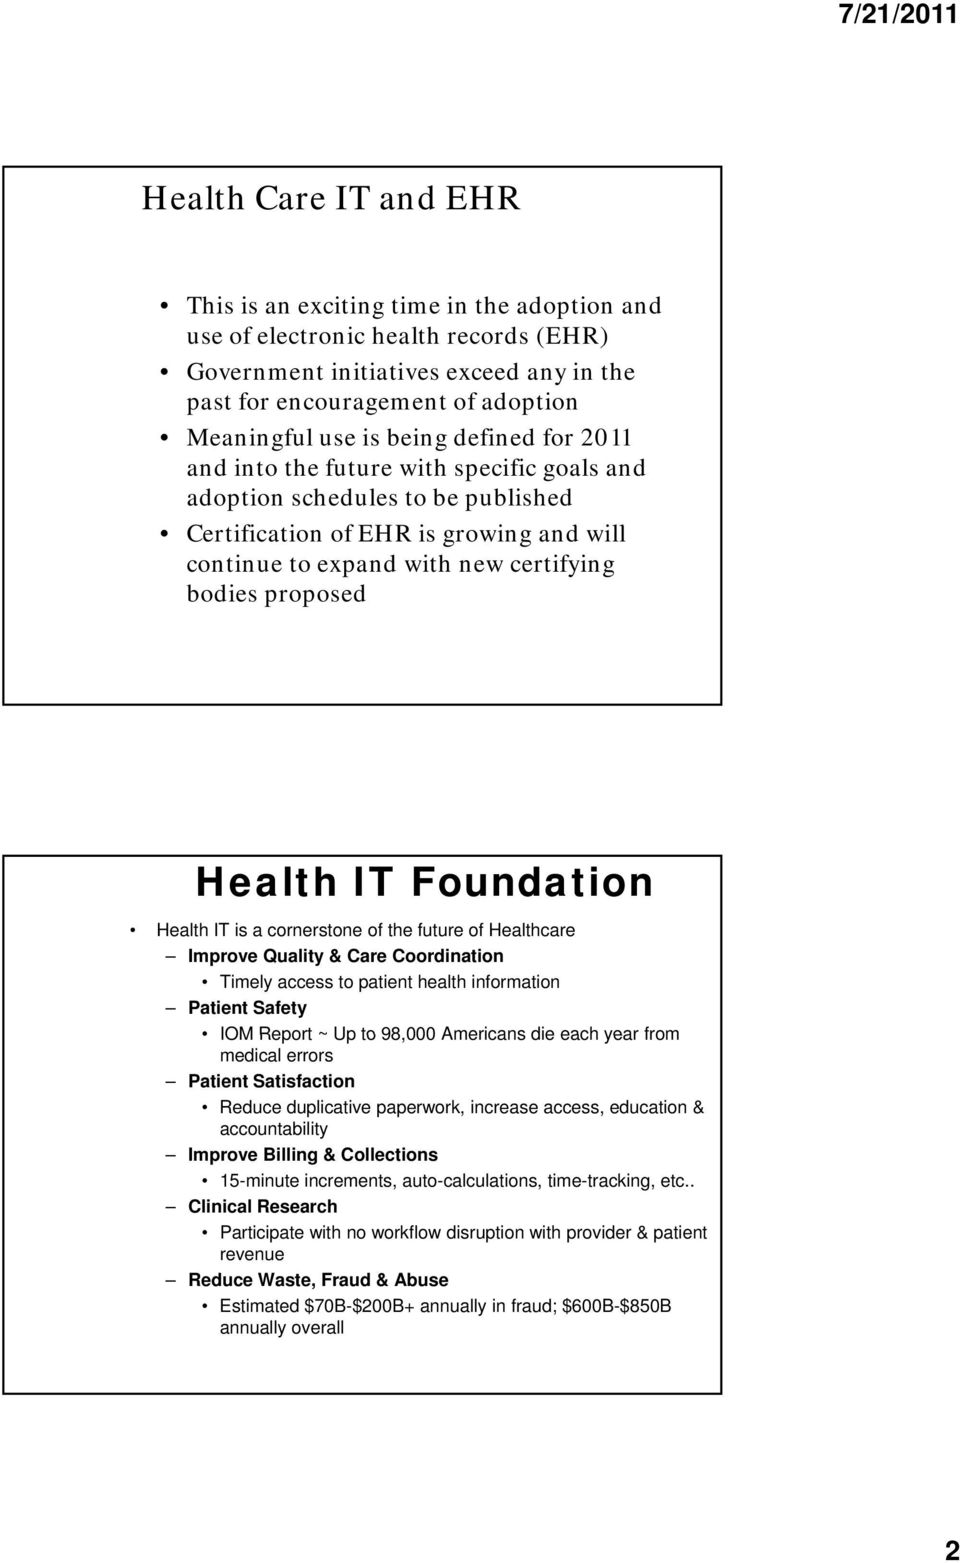 proposed Health IT Foundation Health IT is a cornerstone of the future of Healthcare Improve Quality & Care Coordination Timely access to patient health information Patient Safety IOM Report ~ Up to